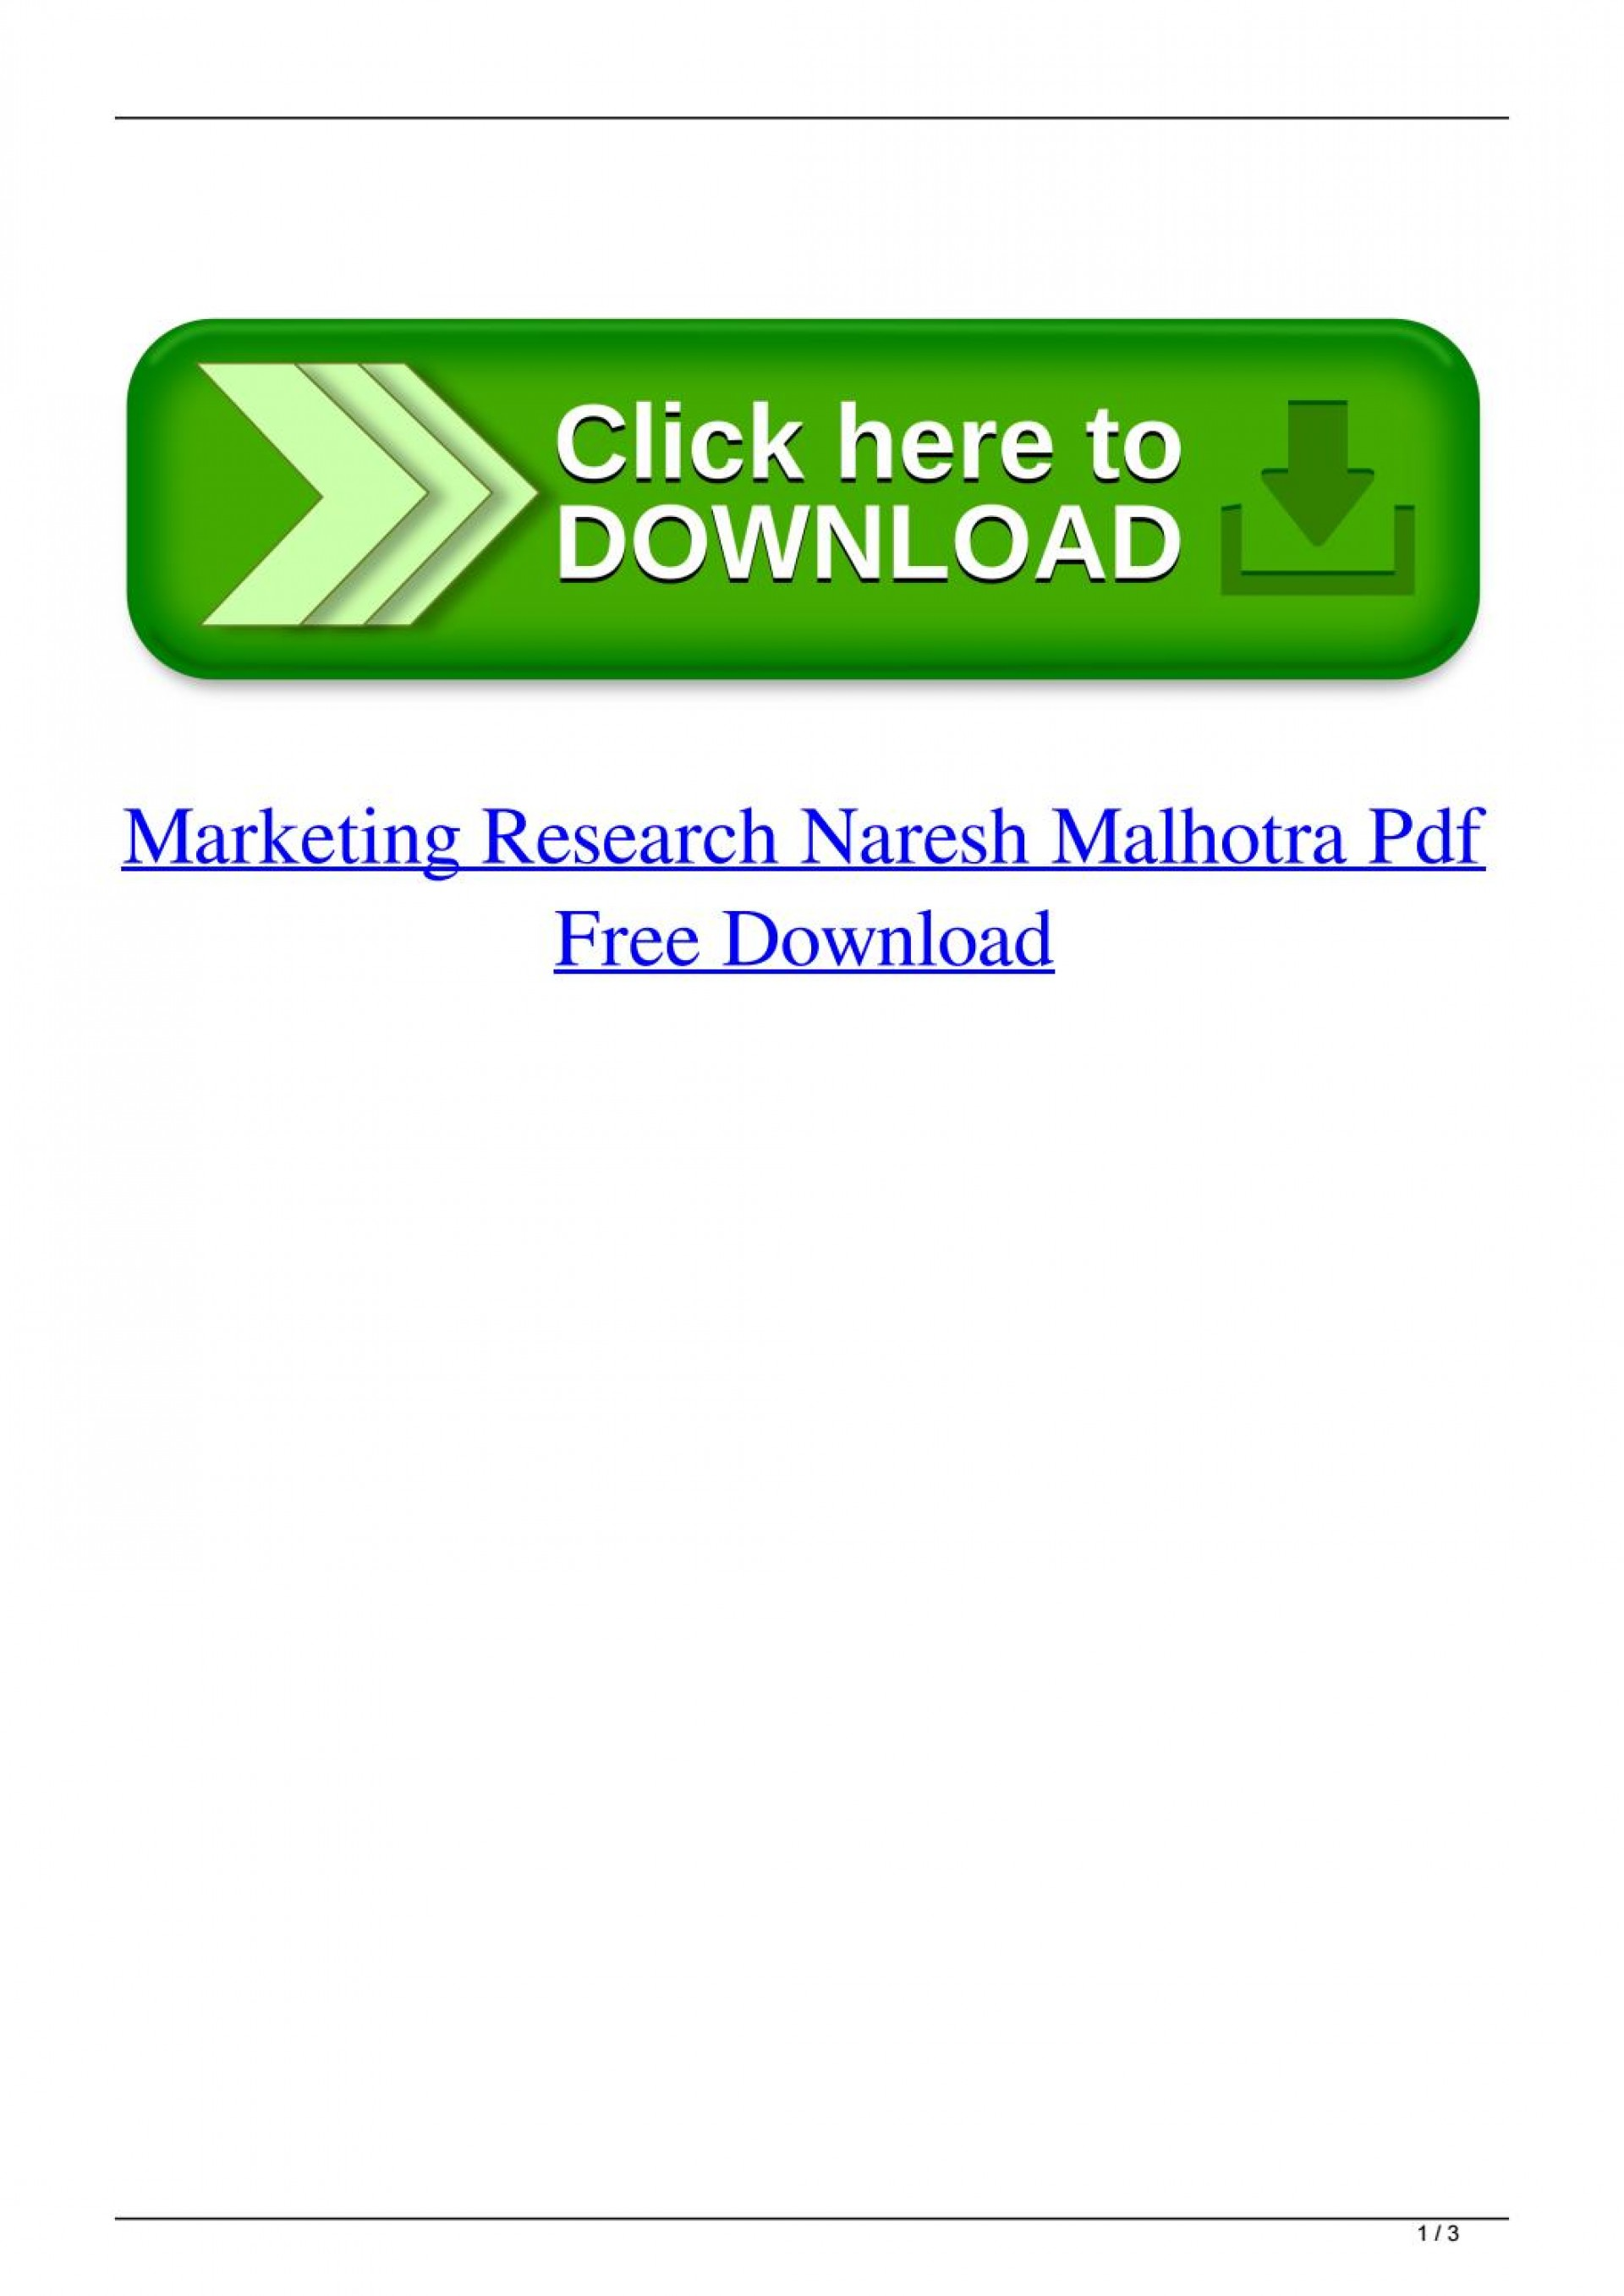 011 Research Paper Page 1 Marketing Papers Pdf Free Impressive Download 1920